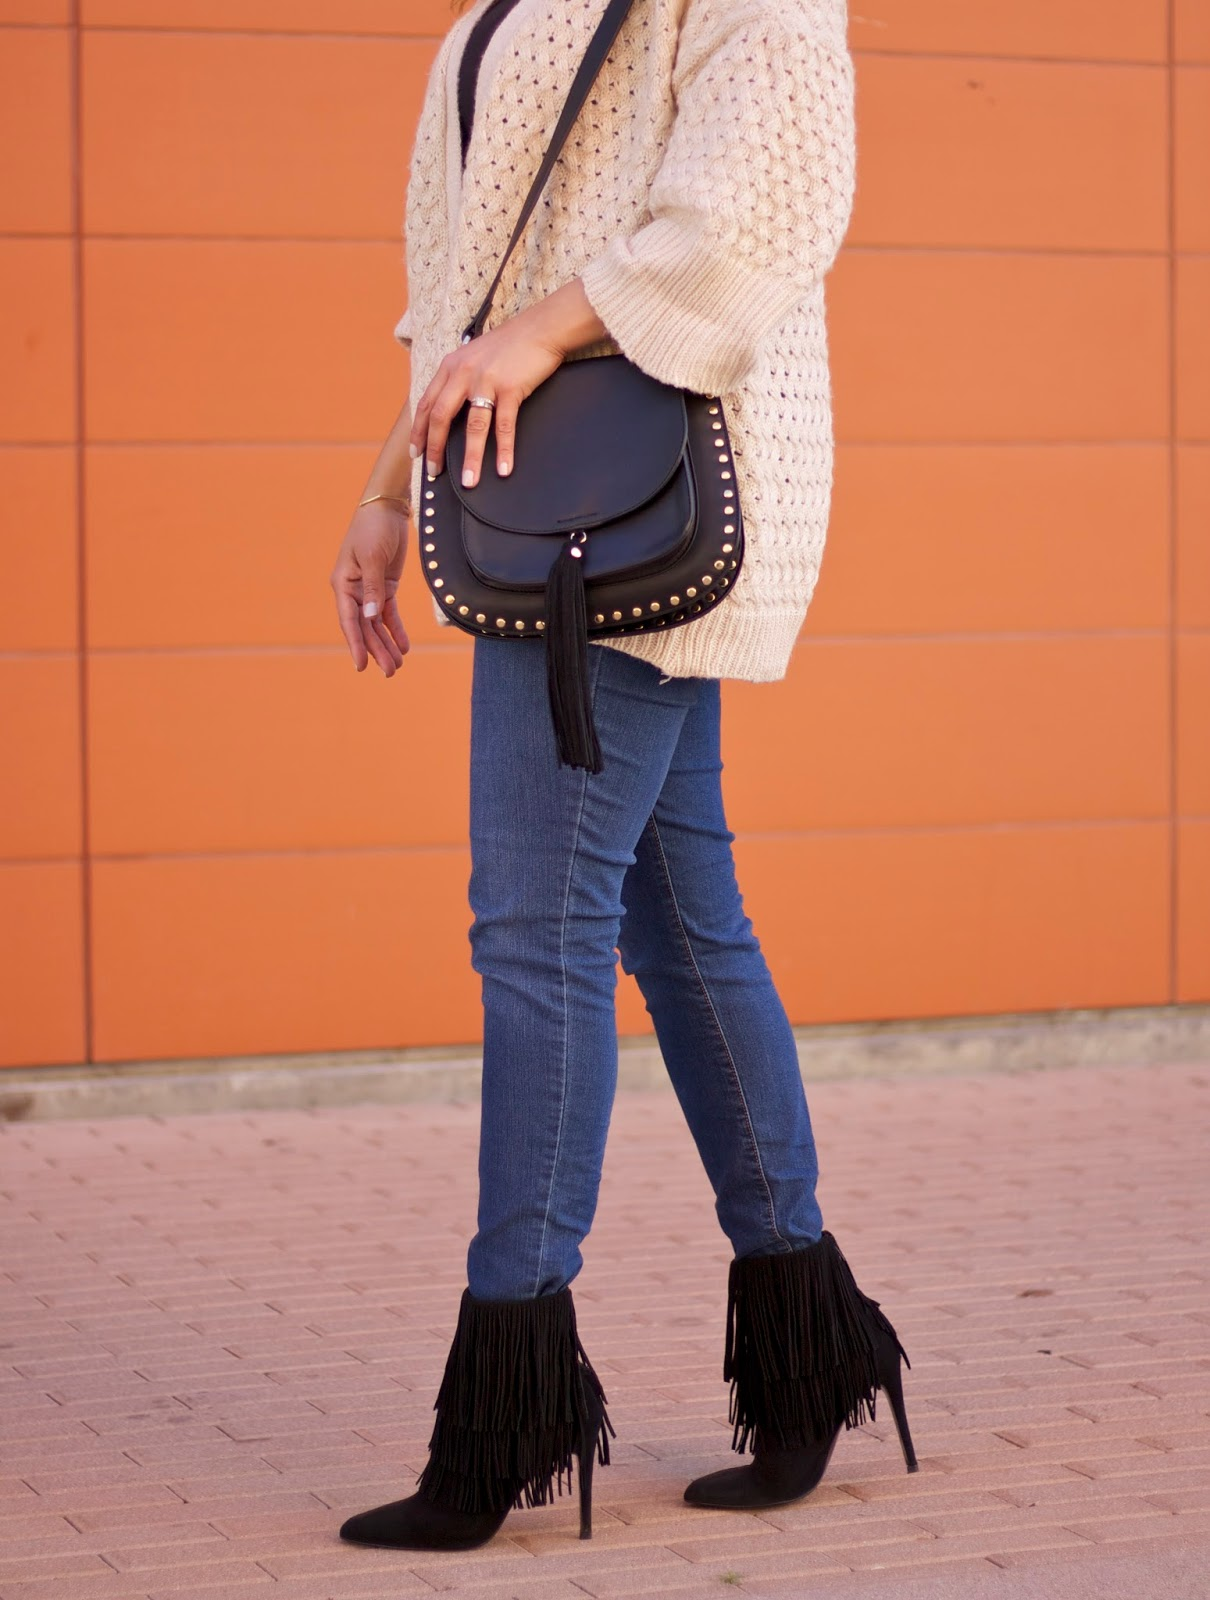 Galian Handbags, black satchel crossbody, affordable handbags, what to wear with fringe booties